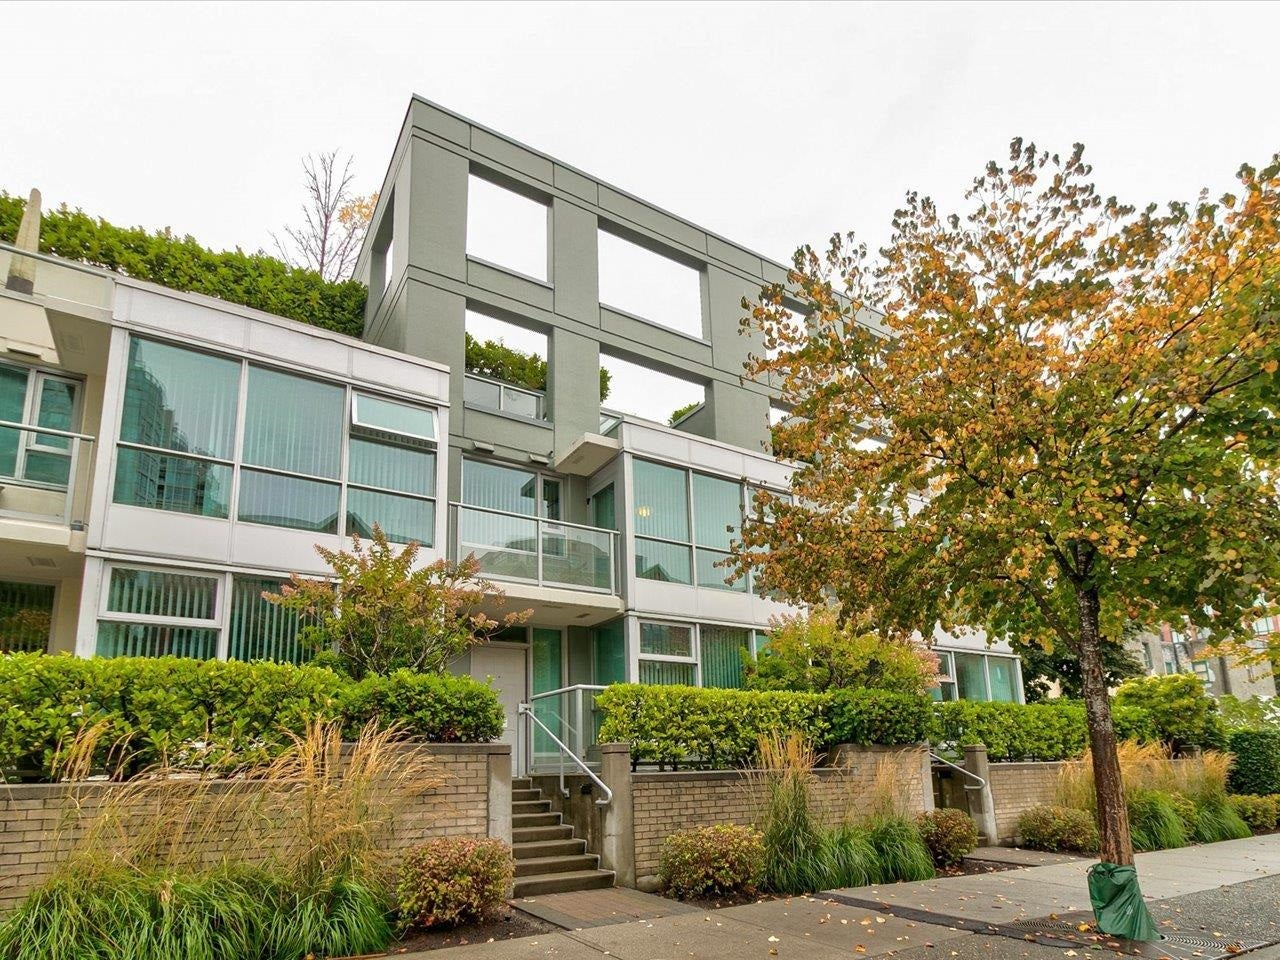 169 MILROSS AVENUE - Downtown VE Townhouse for sale, 2 Bedrooms (R2622901) - #1